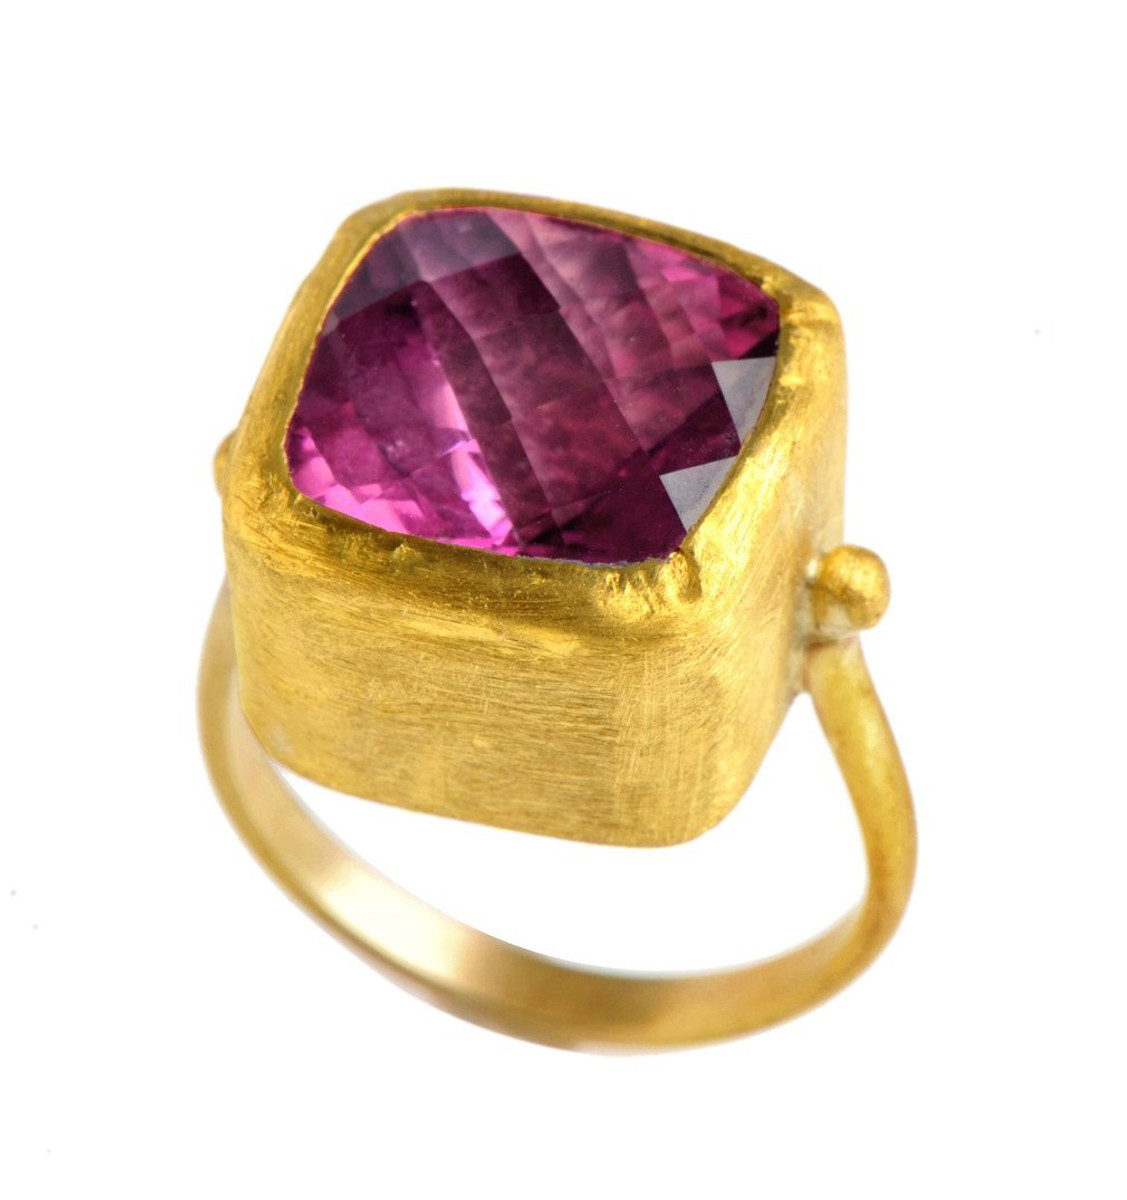 Sweet Candy Pink Topaz Gold Ring by Nava Zahavi - New Arrival